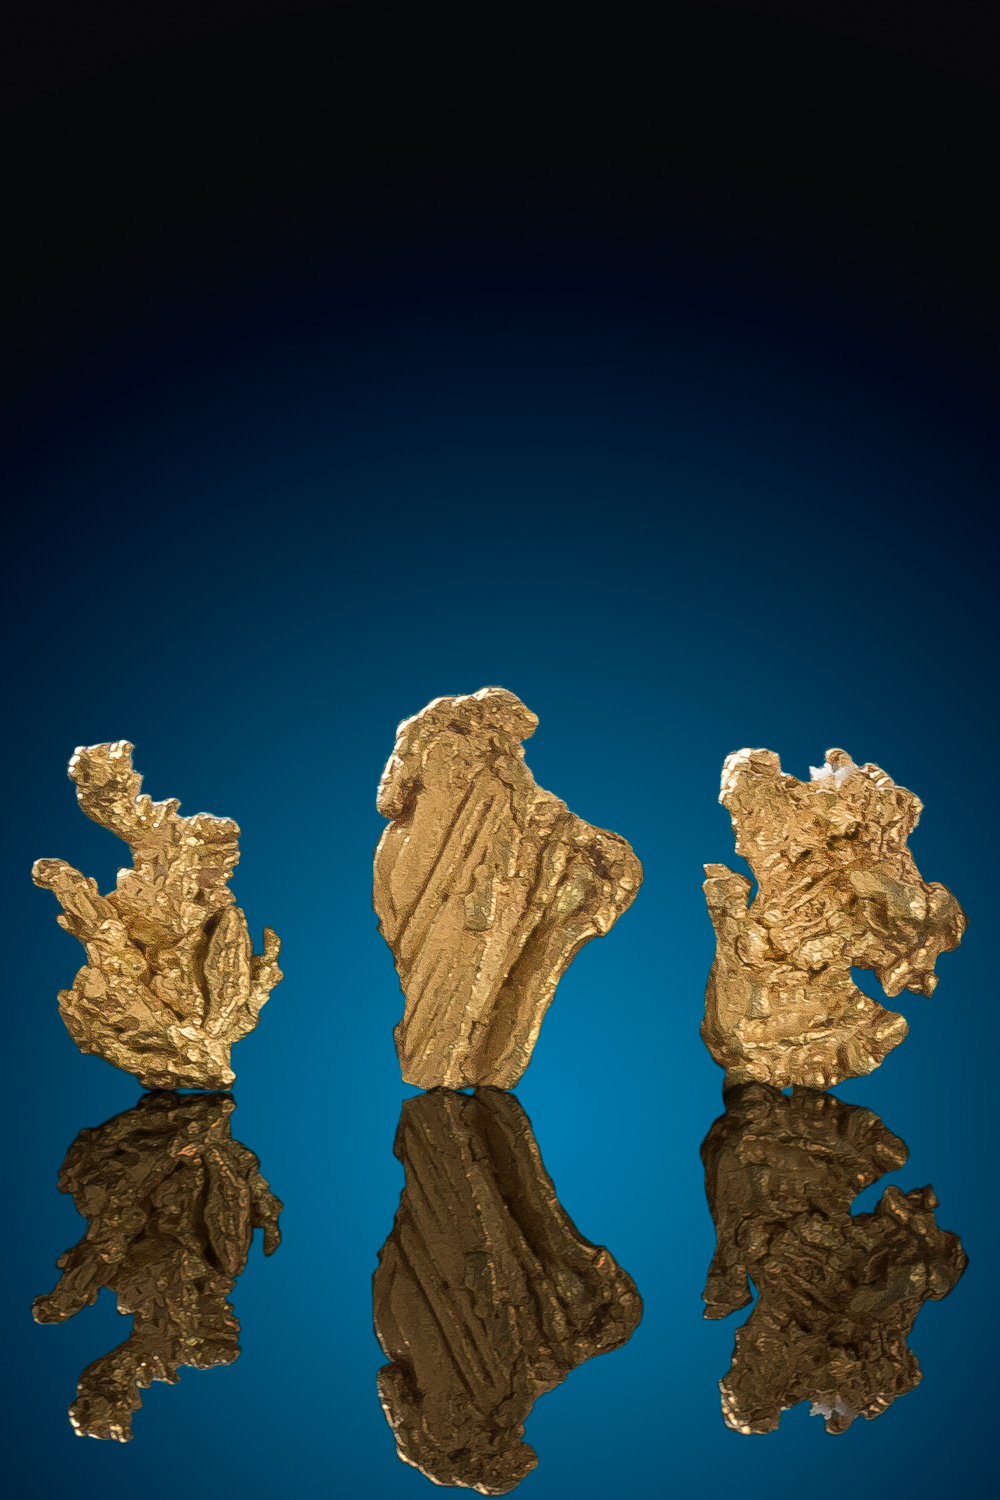 Four Wire Gold Nugget Specimens - Bradshaw Mountains, Arizona - Click Image to Close